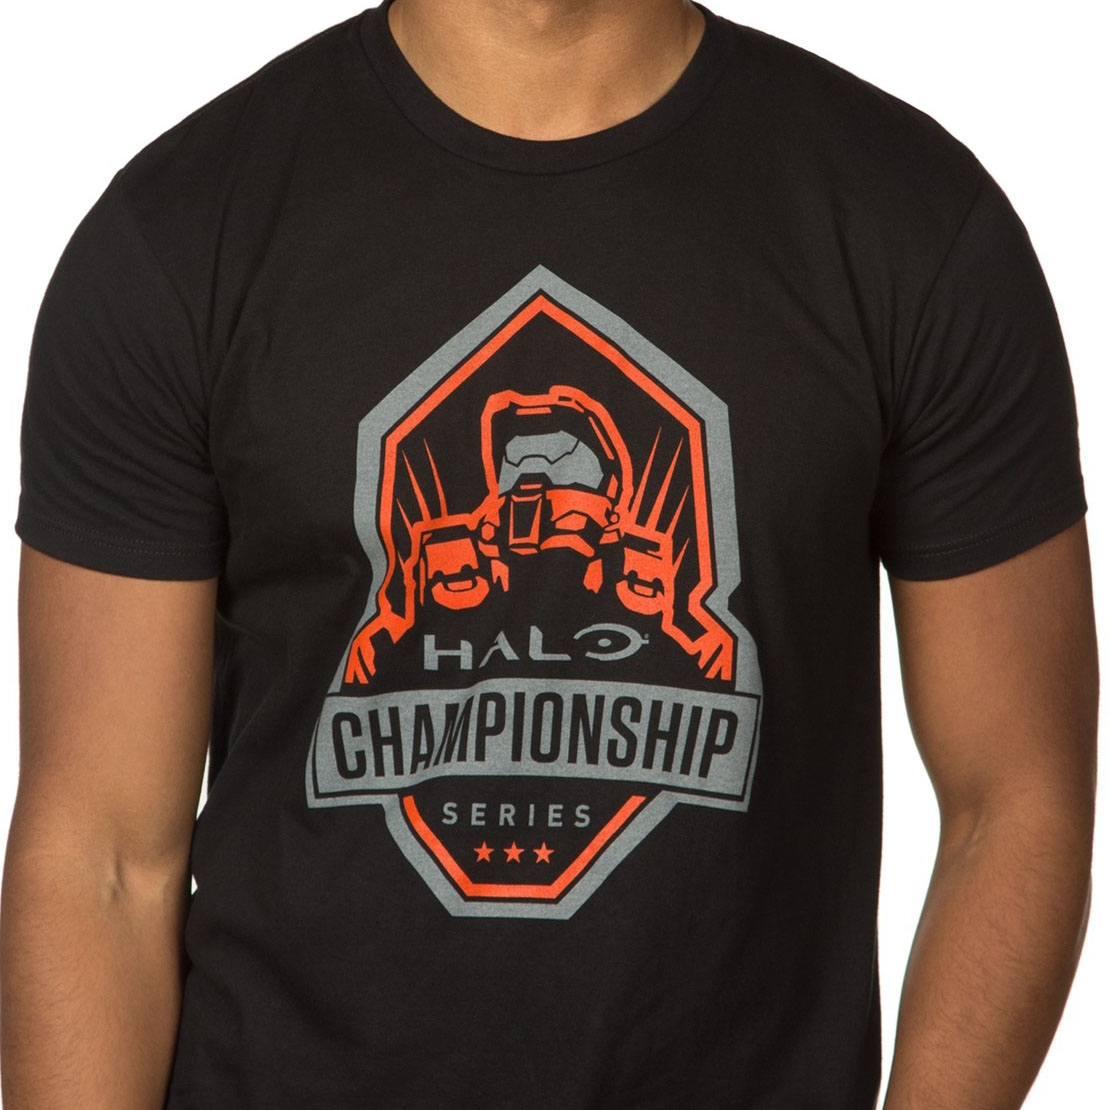 Photograph: Halo Championship Series Red Team T-shirt